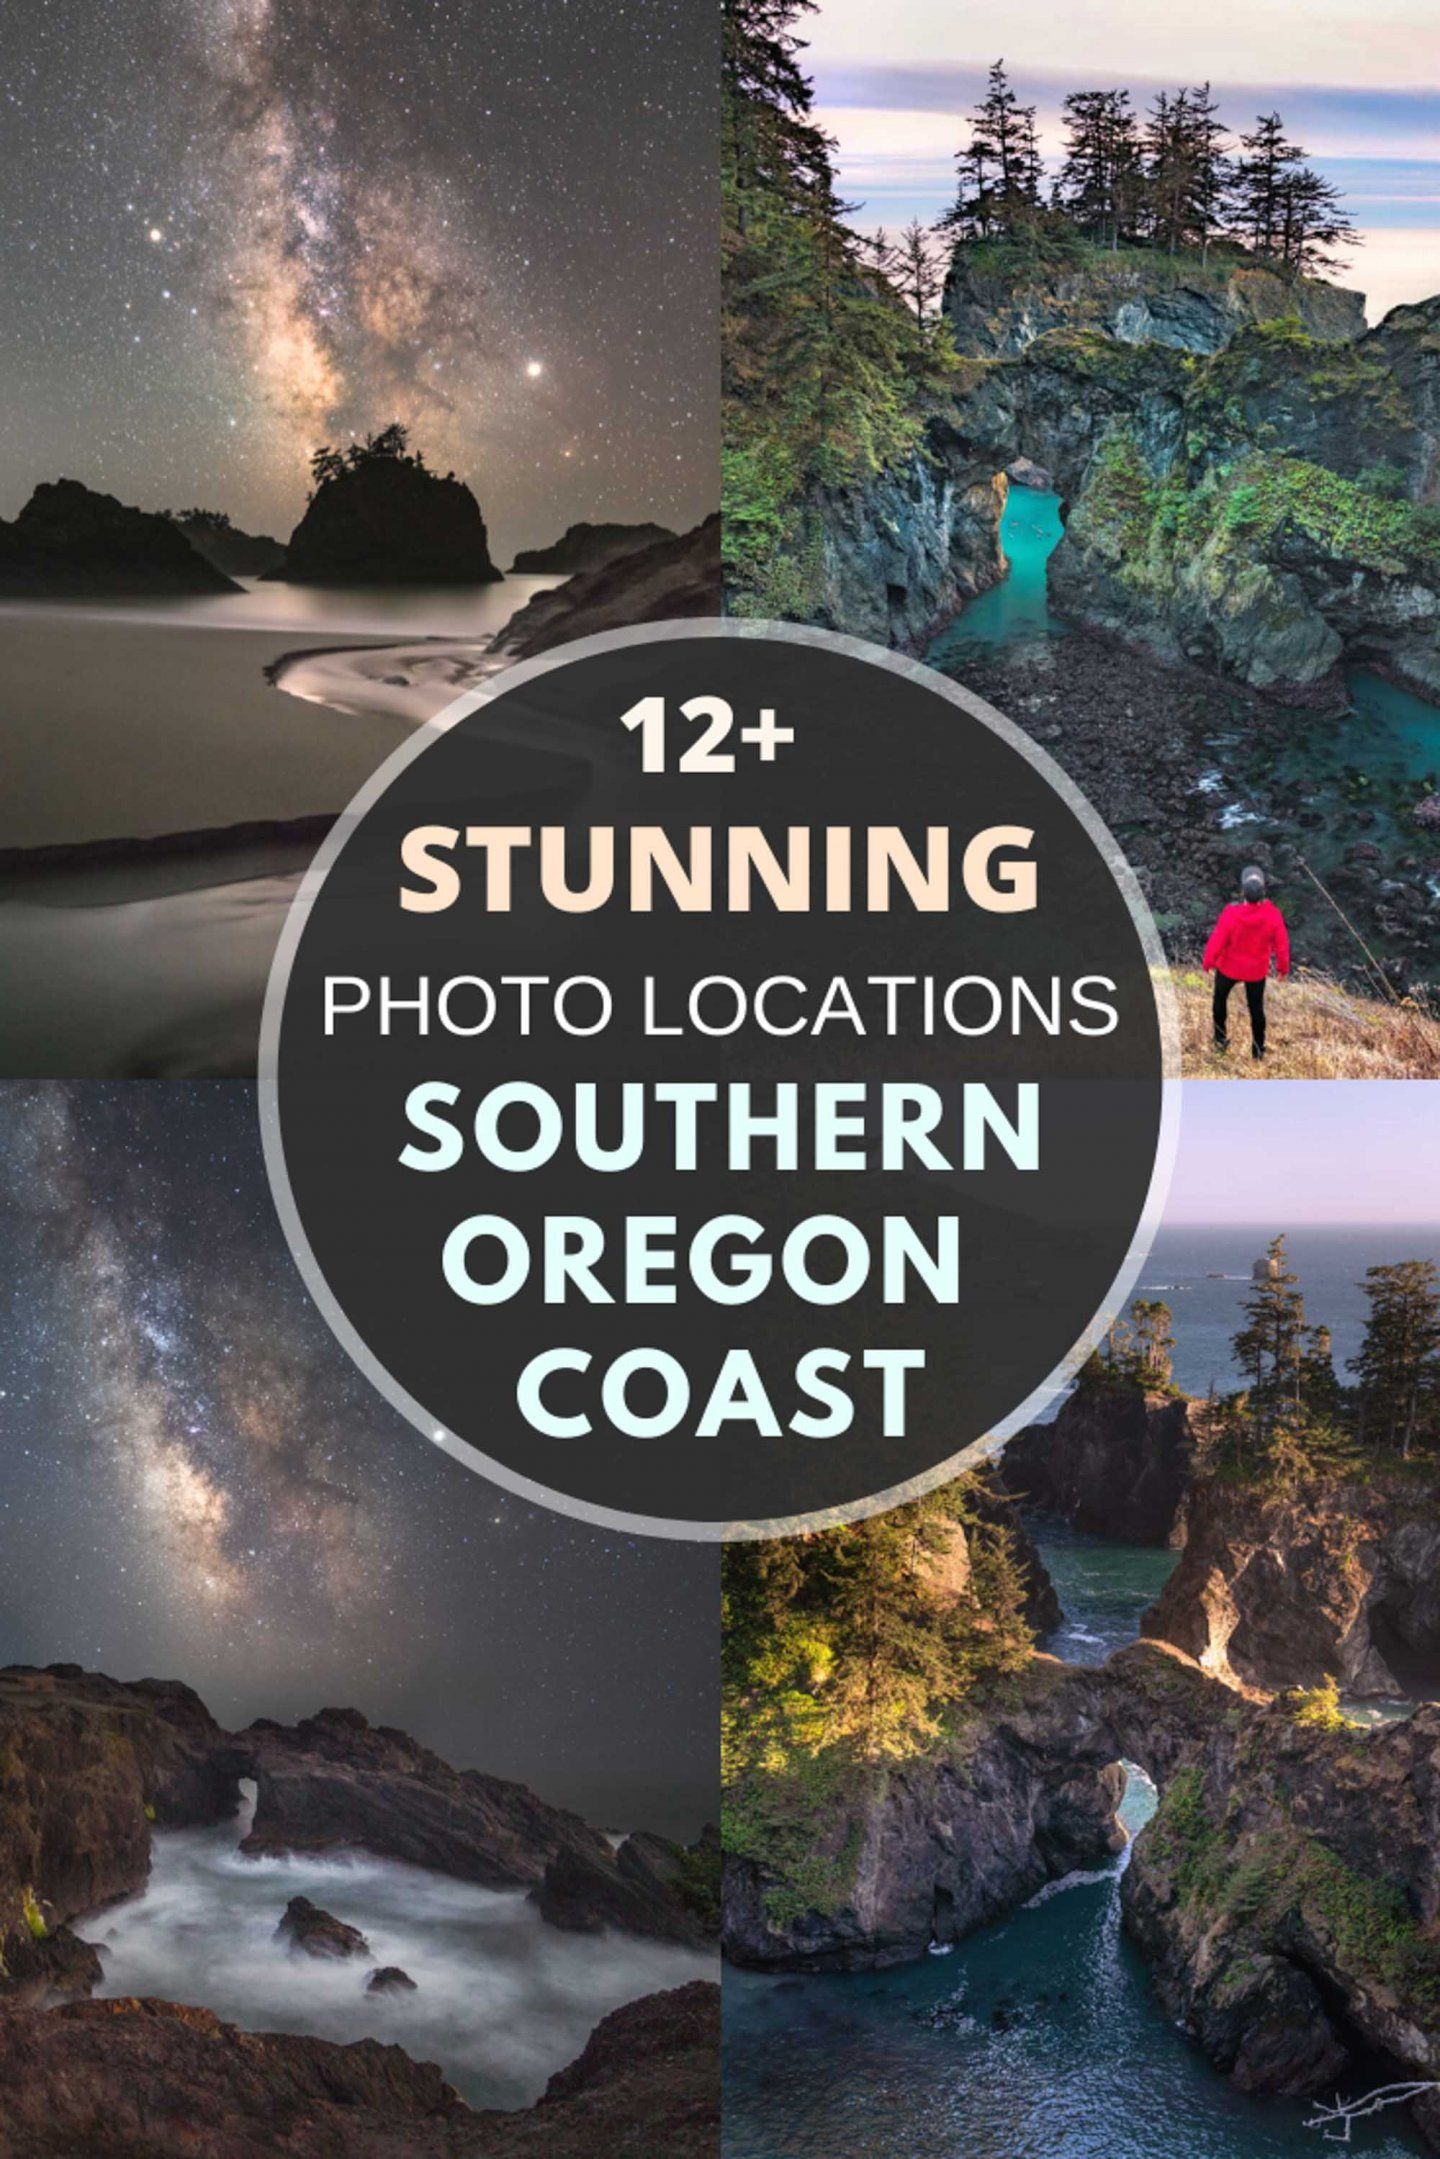 Stunning Photo Locations on the Southern Oregon Coast #oregoncoast